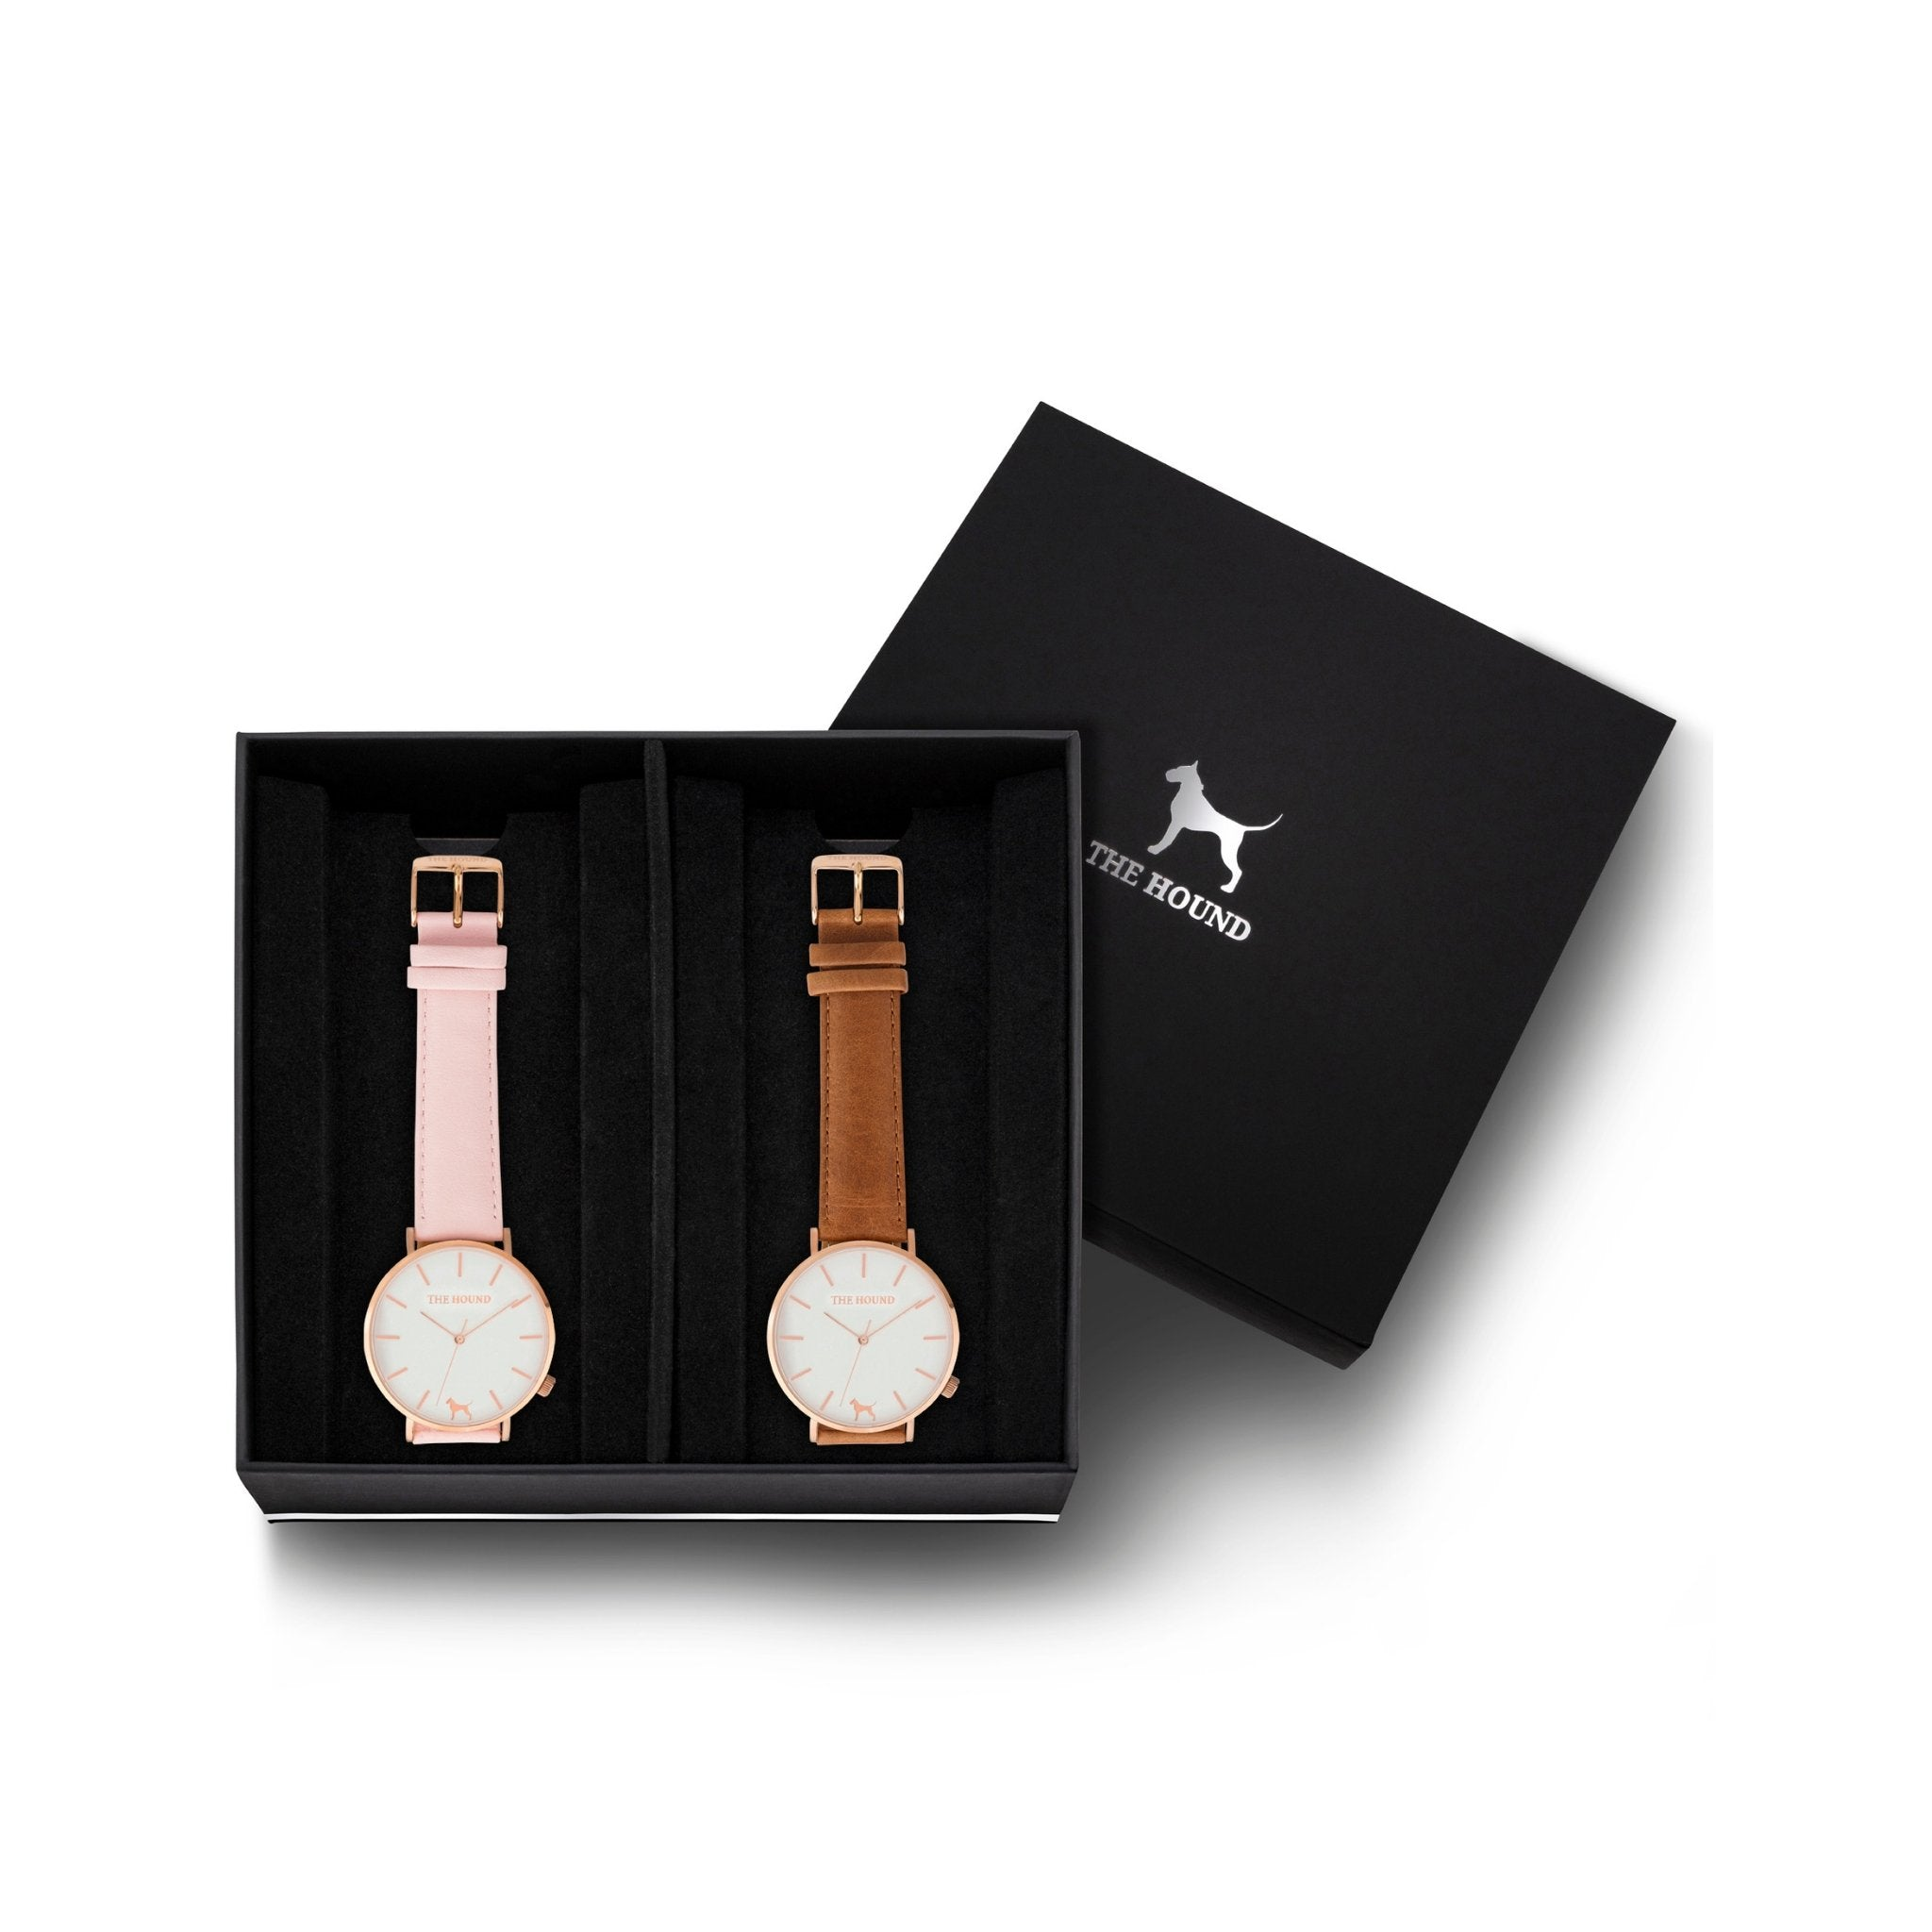 Custom gift set - Rose gold and white watch with stitched blush pink genuine leather band and a rose gold and white watch with stitched tan genuine leather band